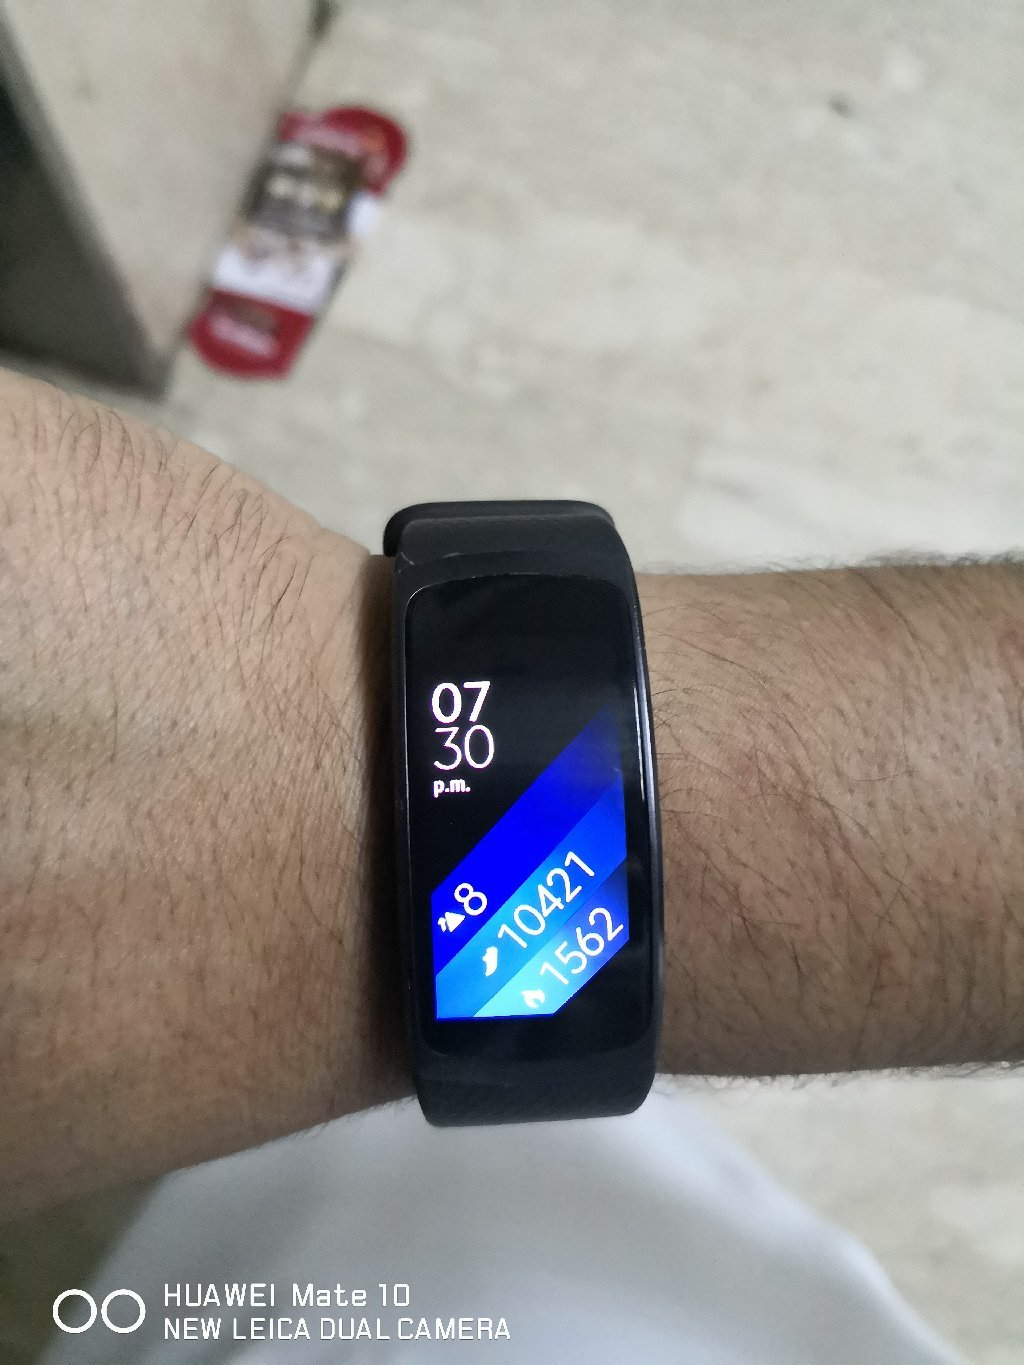 Gear Fit 2 with Box and Bill (08/2016)